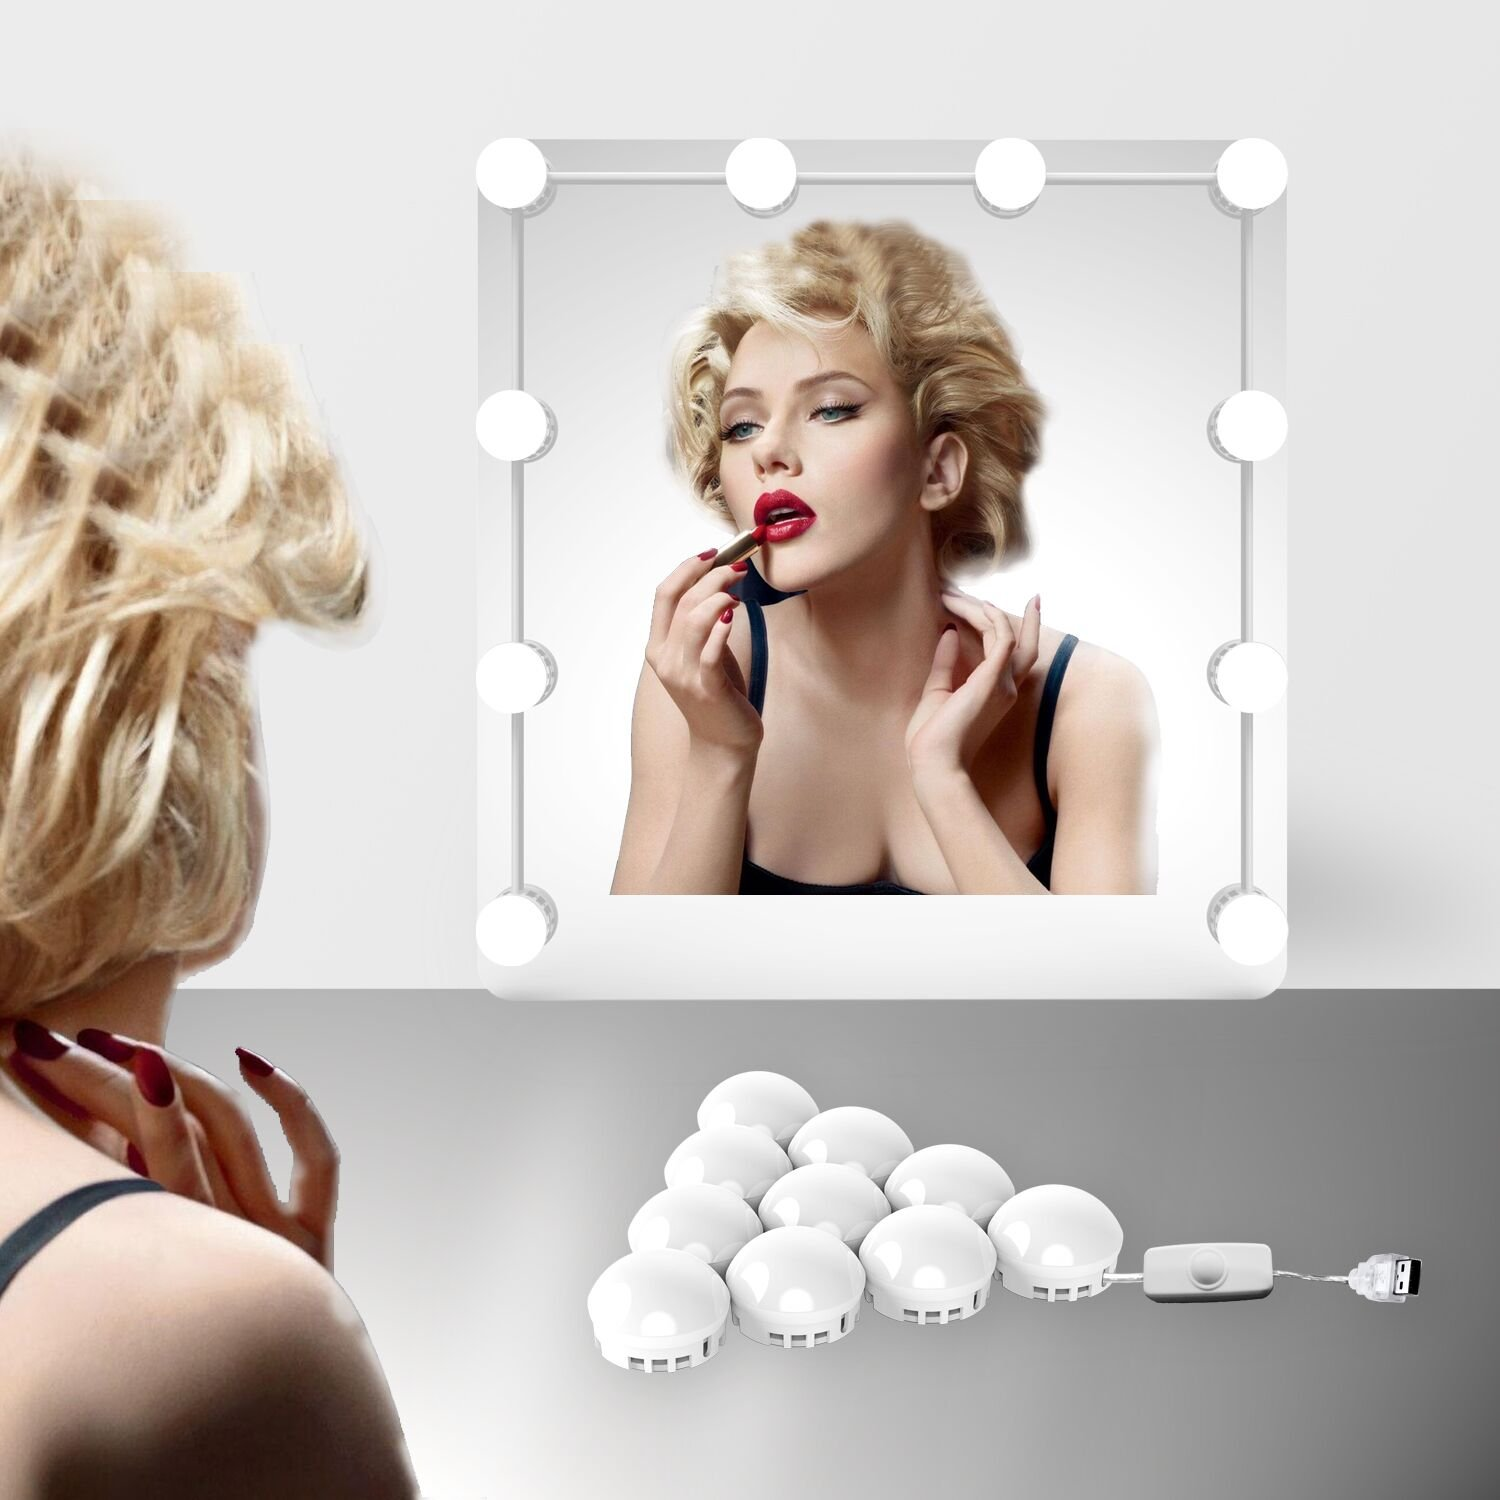 EEIEER Hollywood Style vanity Mirror Lights with 10 Dimmable LED Bulbs Kit , USB Powered Lighting Fixture Strip for Makeup Vanity Mirror Table Set in Dressing Room